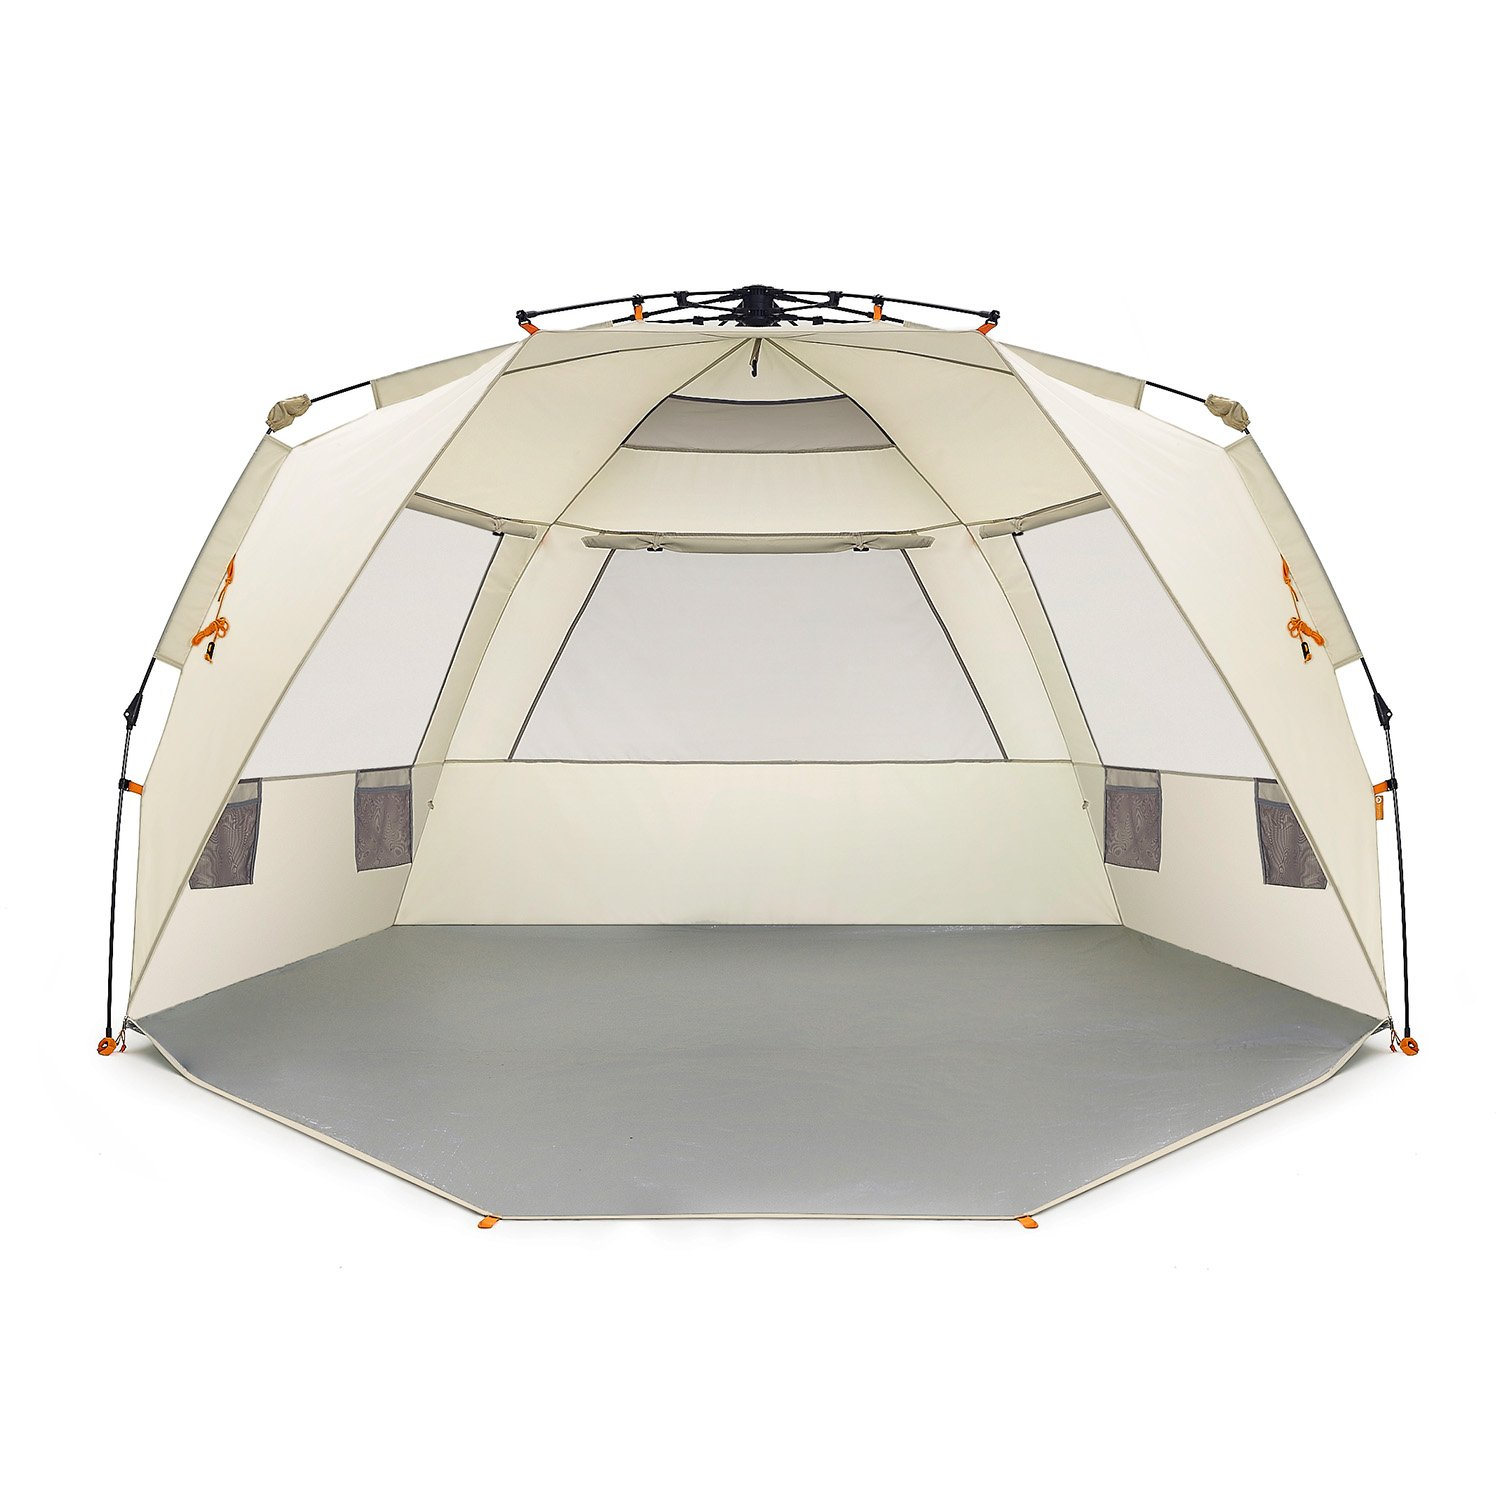 Easthills Outdoors Instant Shader Deluxe XL Easy Up 4 Person Beach Tent Sun Shelter - Extended Zippered Porch Included by Easthills Outdoors